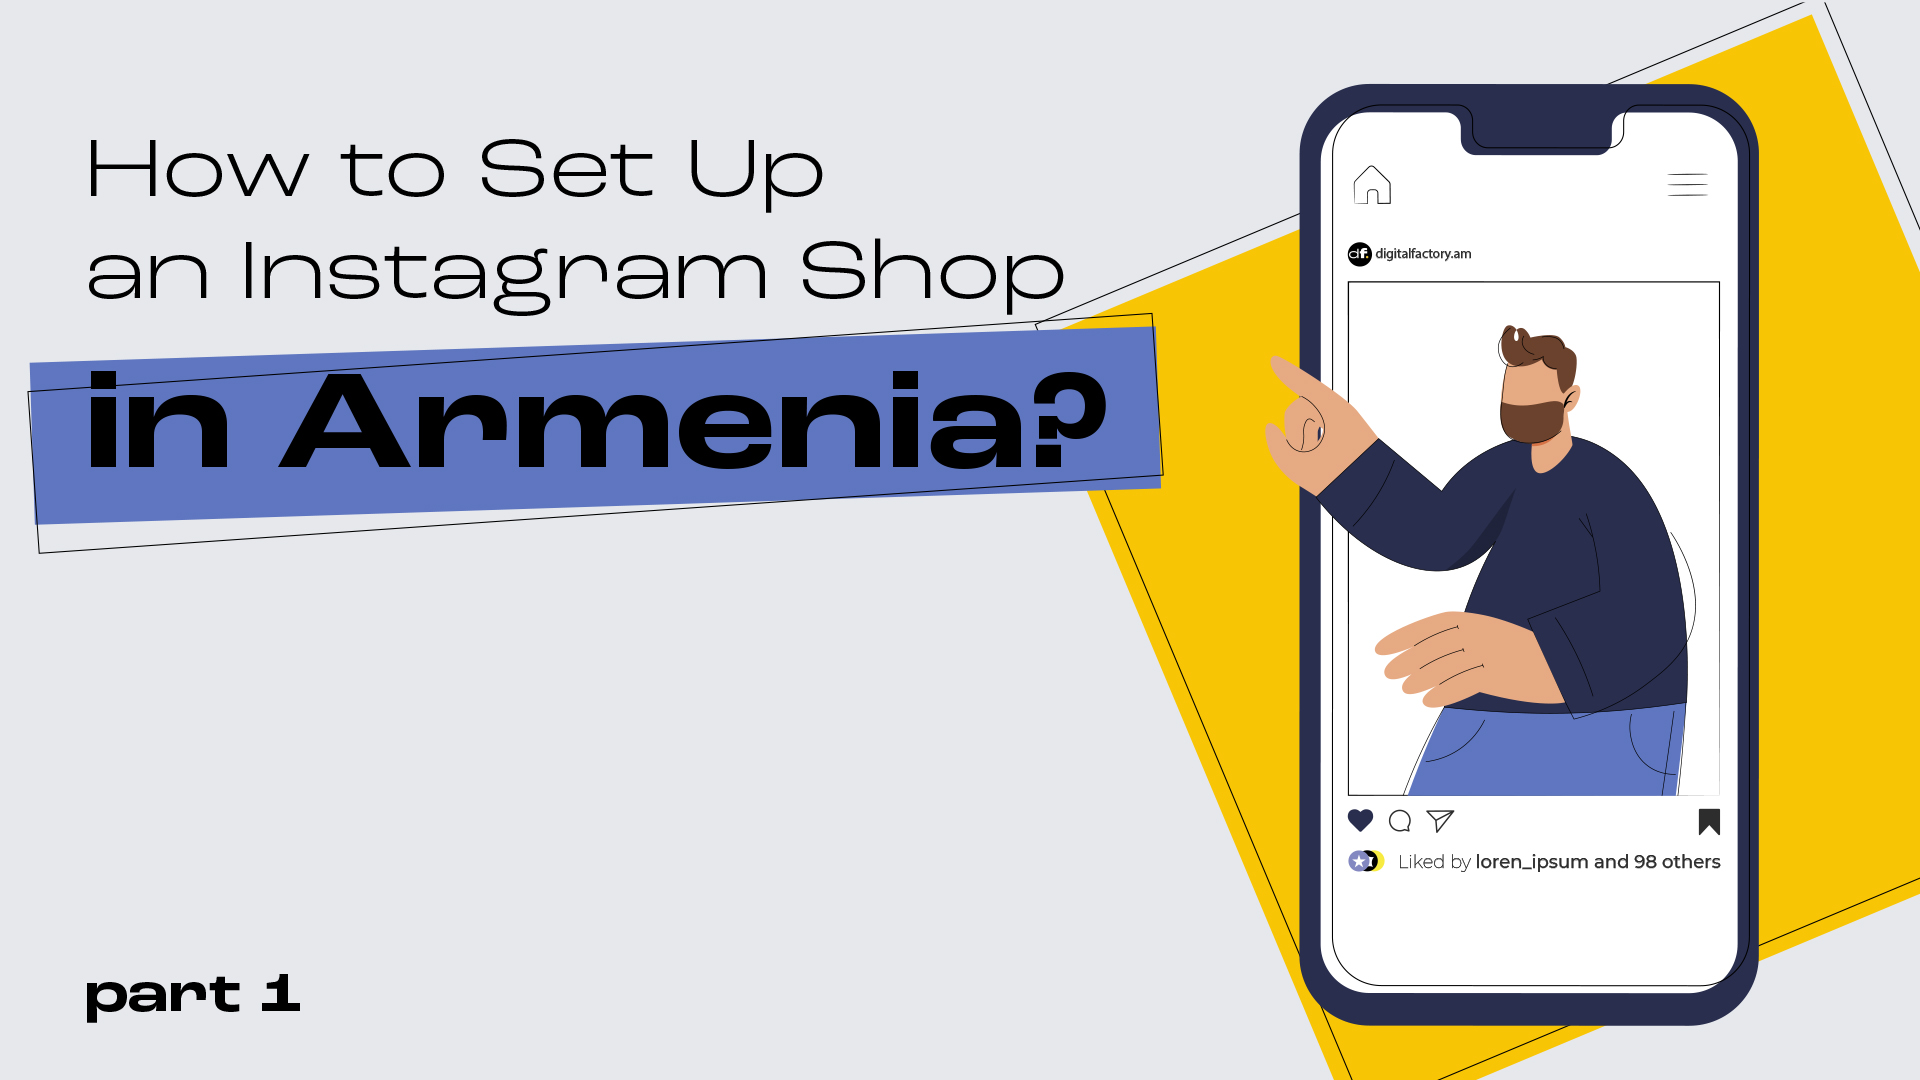 How to Set up an Instagram Shop in Armenia? - Part 1